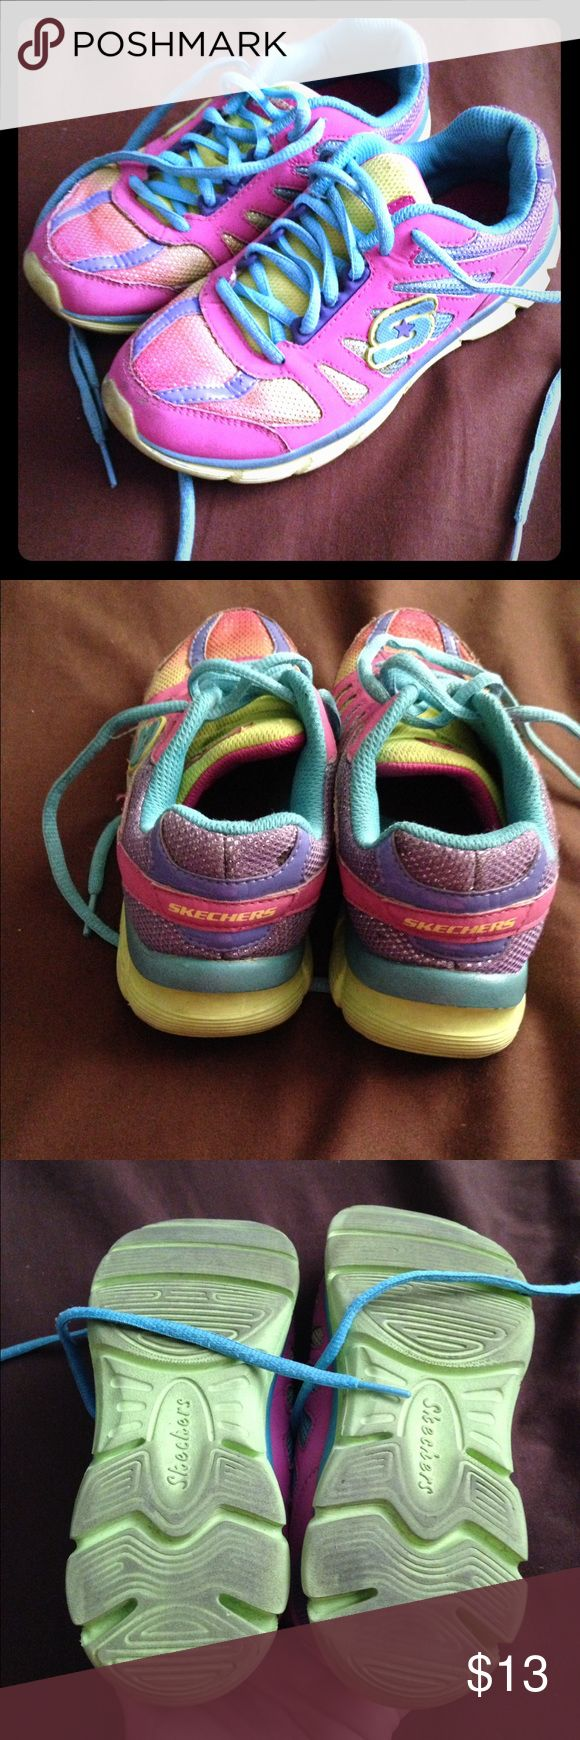 Sketcher sneakers tennis shoes size 2 Girls sketcher tennis shoes size 2 good condition have been washed sneakers Skechers Shoes Sneakers